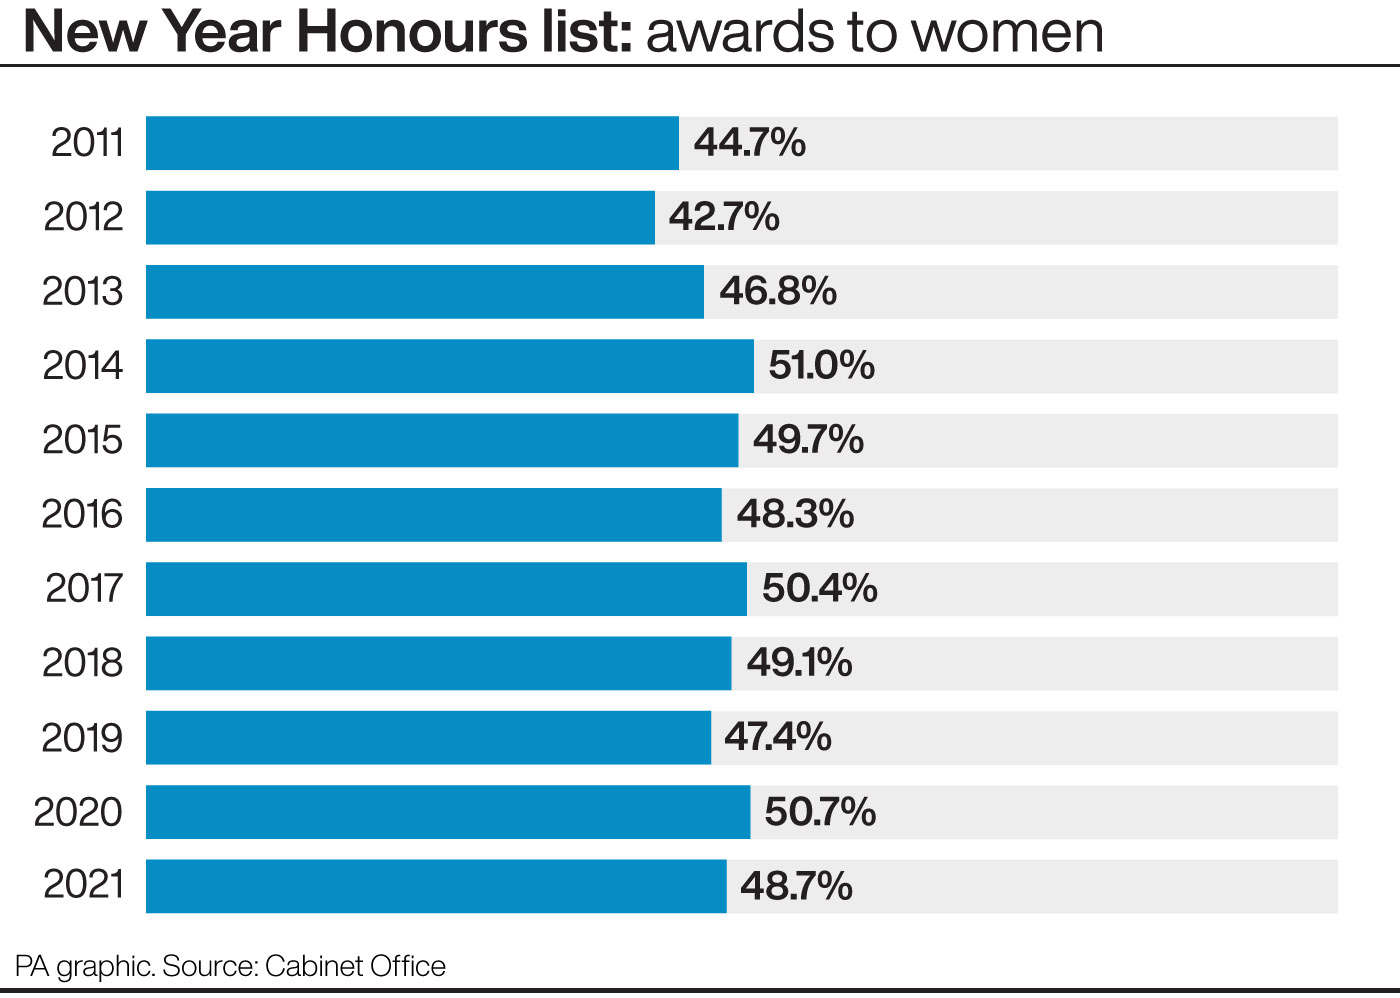 New Year Honours list: awards to women